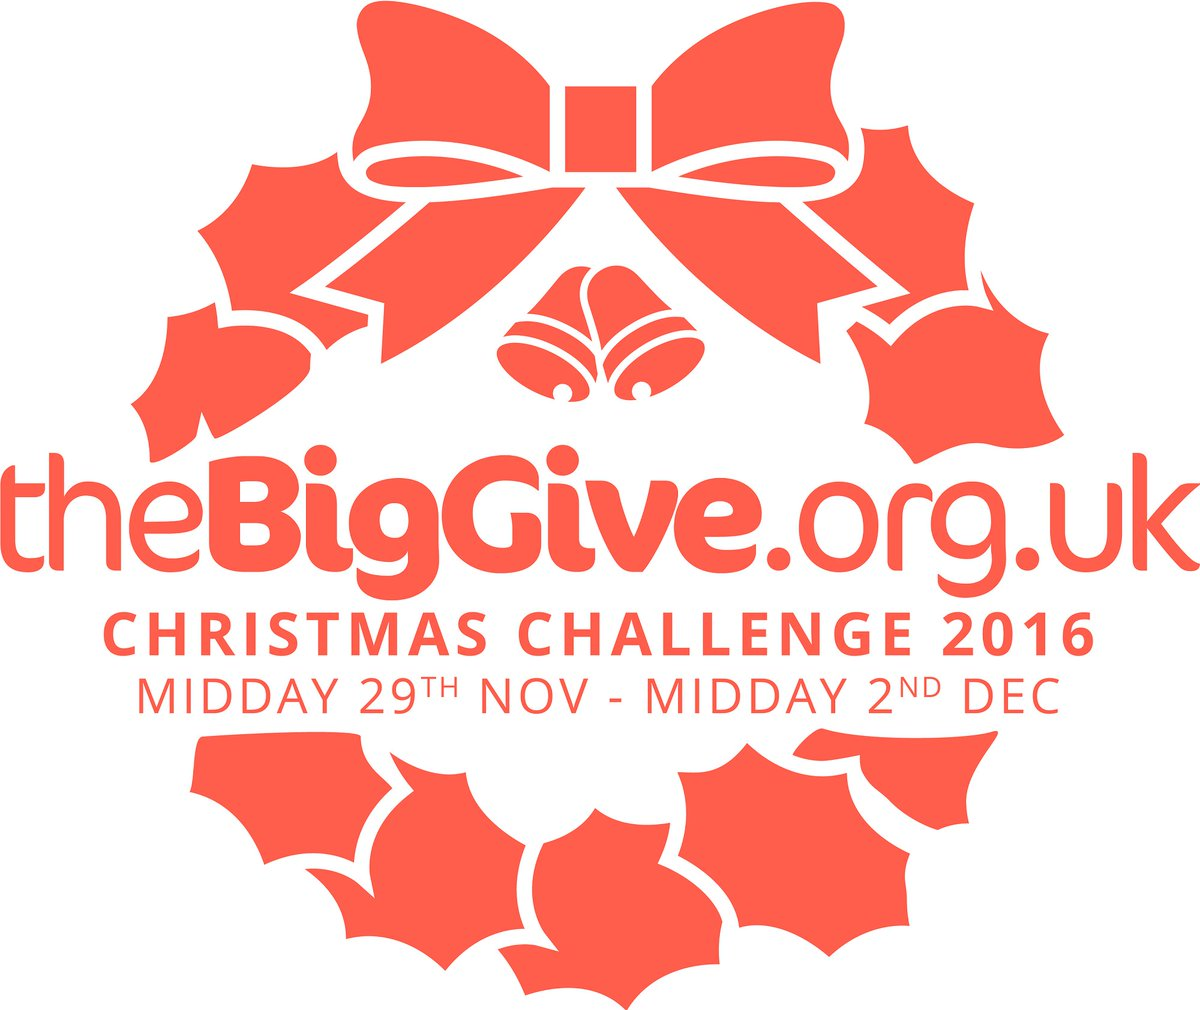 Just over 24 hours to go to #doubledonations to charity - go go go! #ChristmasChallenge16 https://t.co/UfRG6snOcC https://t.co/20OcVp075o